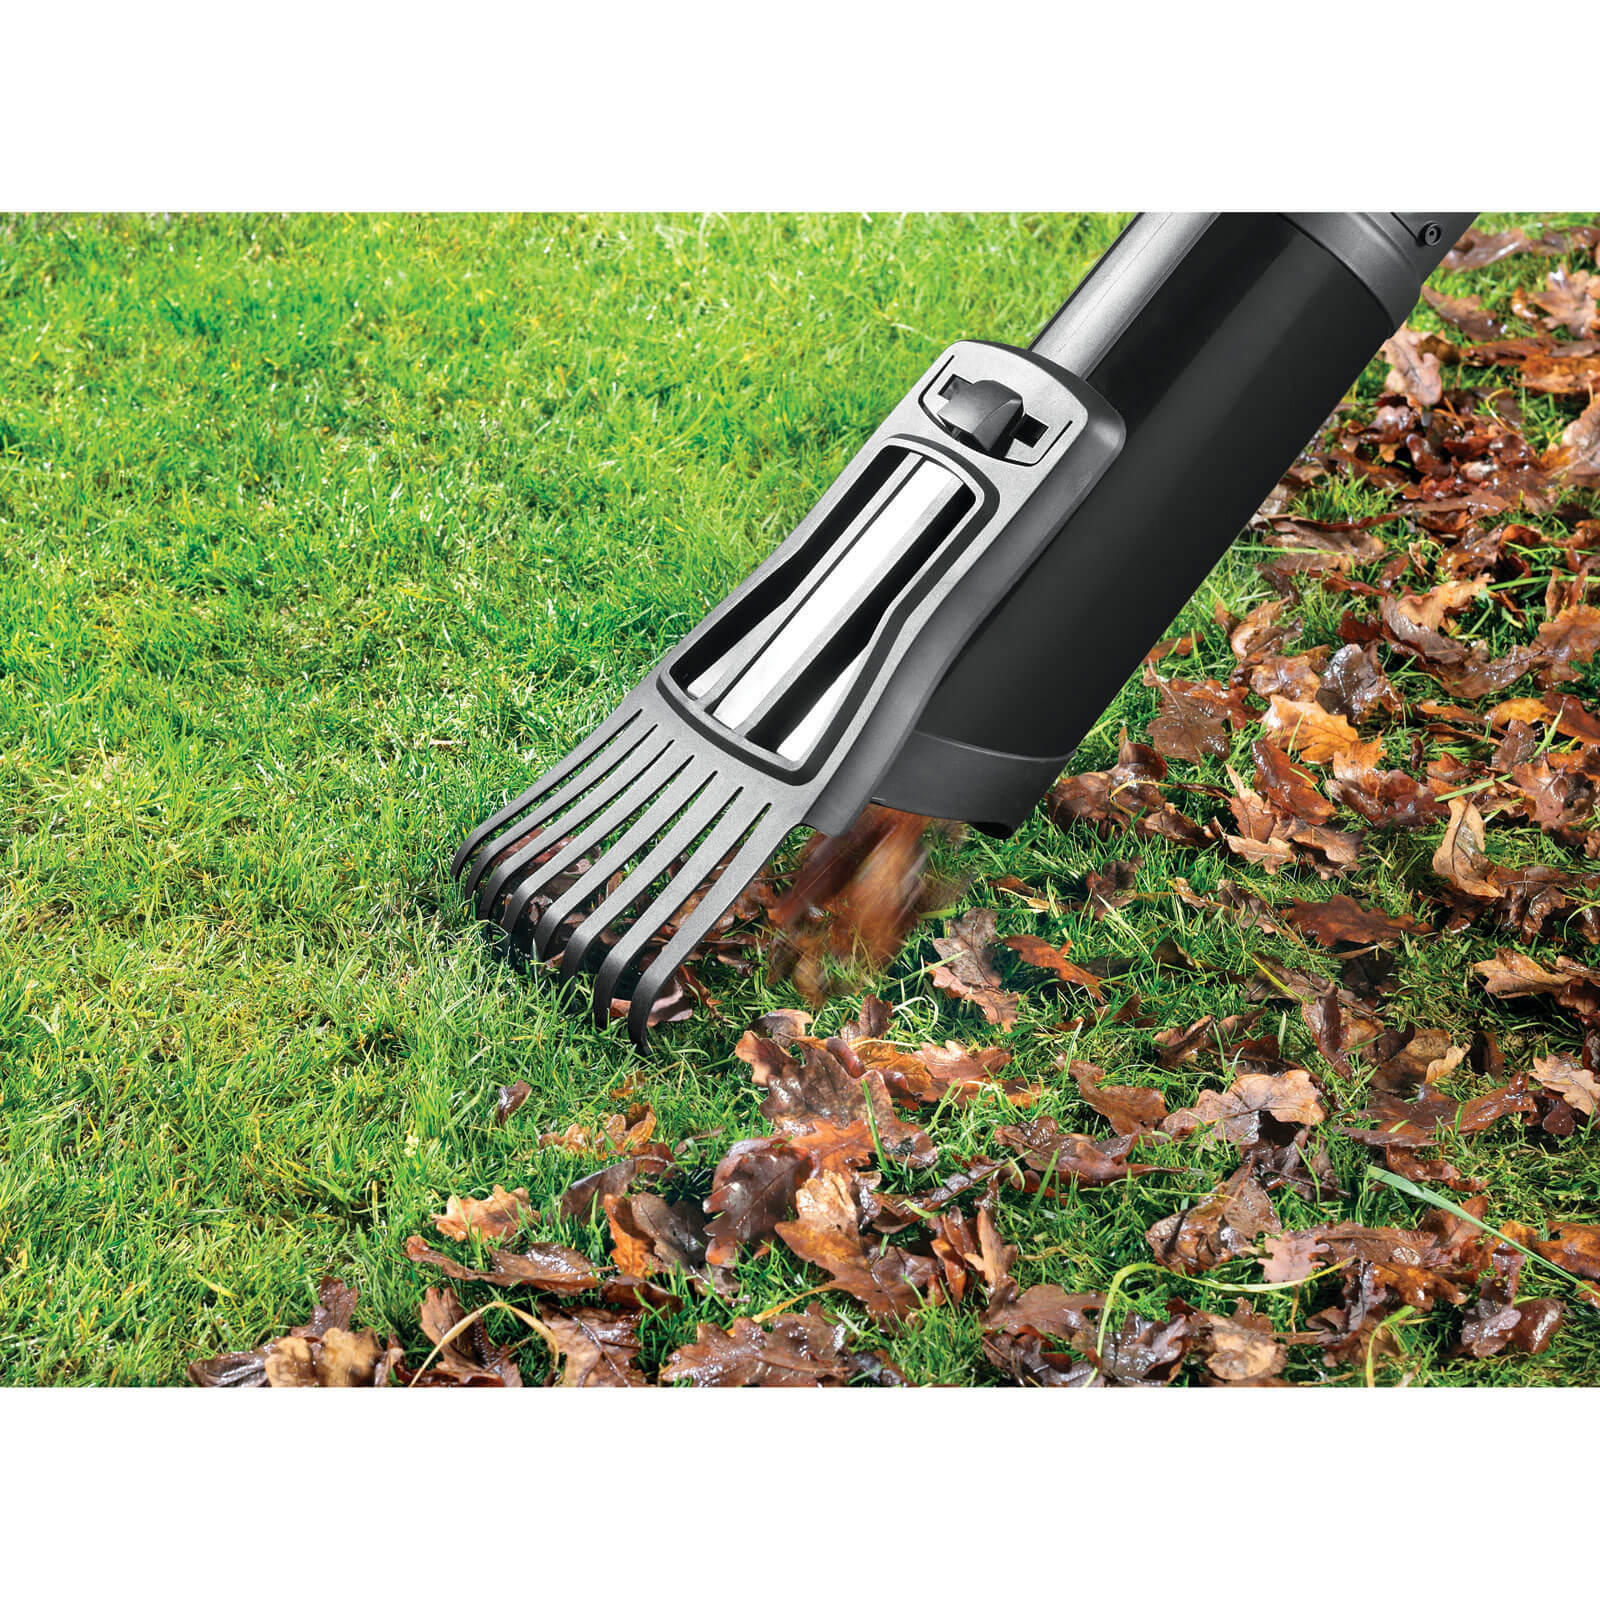 Black decker gw3050 garden vacuum leaf blower with for Housse aspirateur